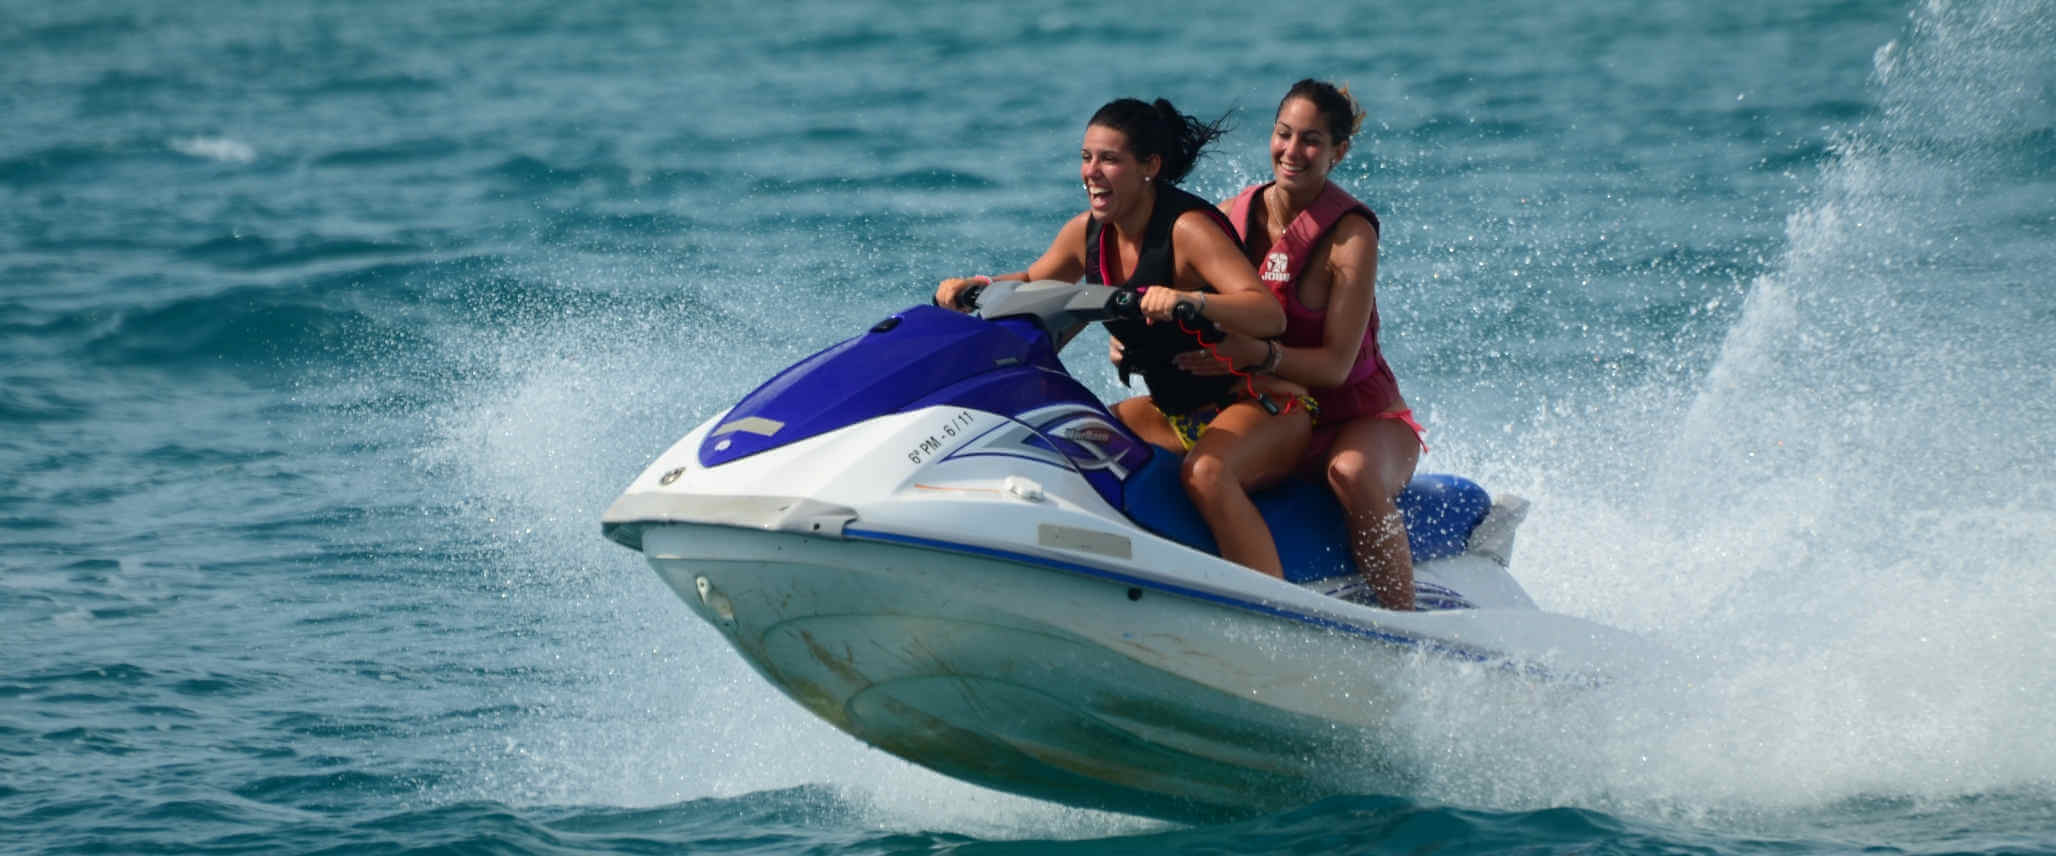 Watersports in Mallorca